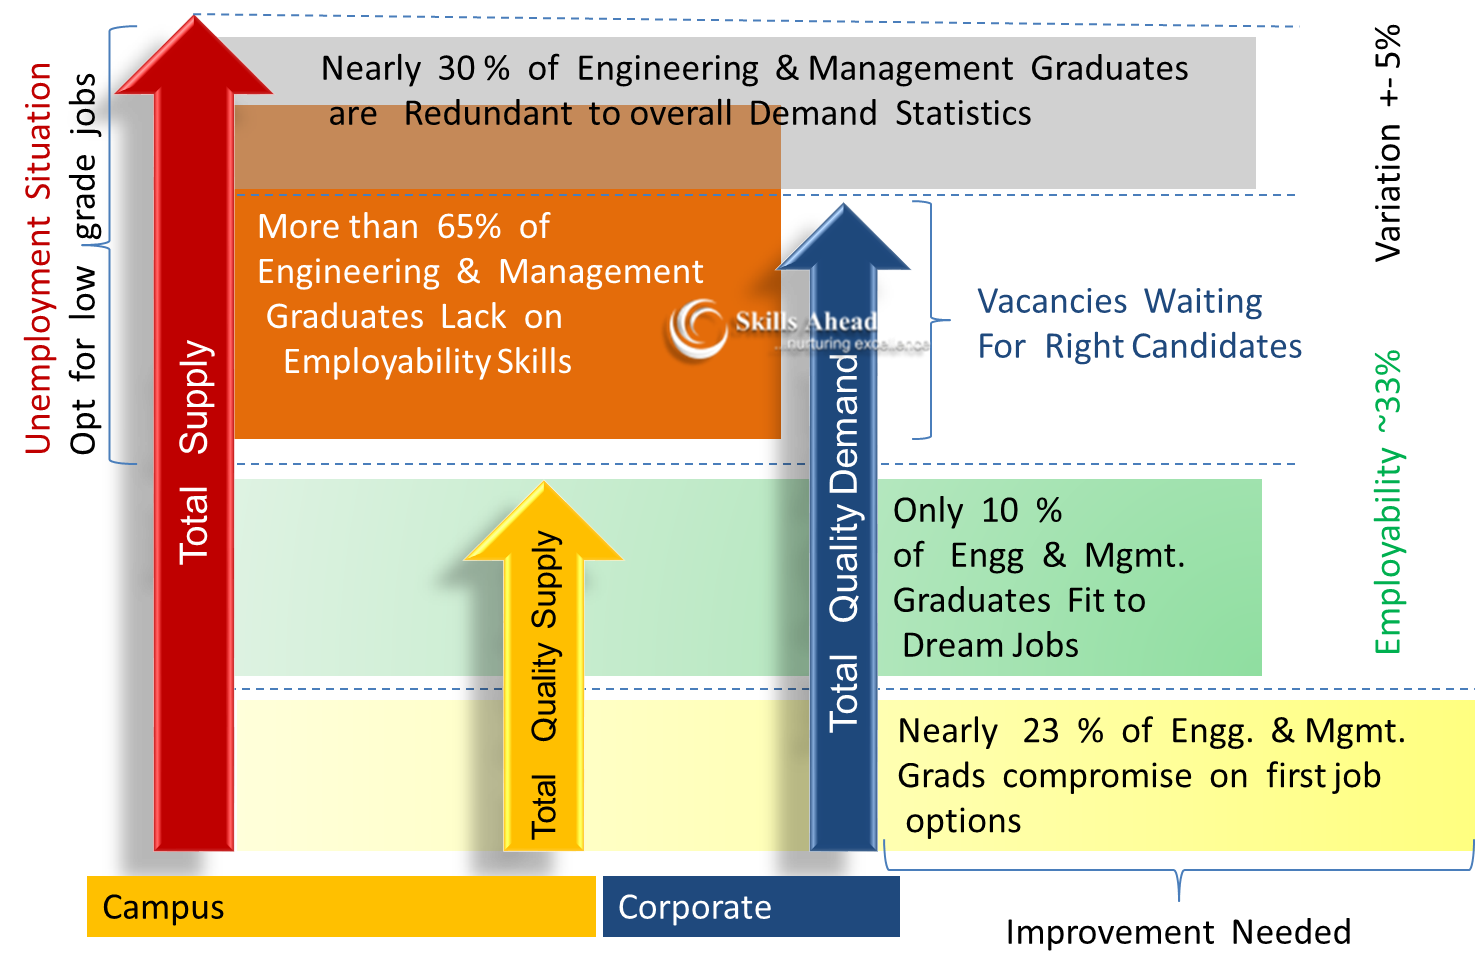 job market an essential report skills ahead the employment landscape is simple to understand but difficult to measure and cure accurately total numbers of engineering and management graduates